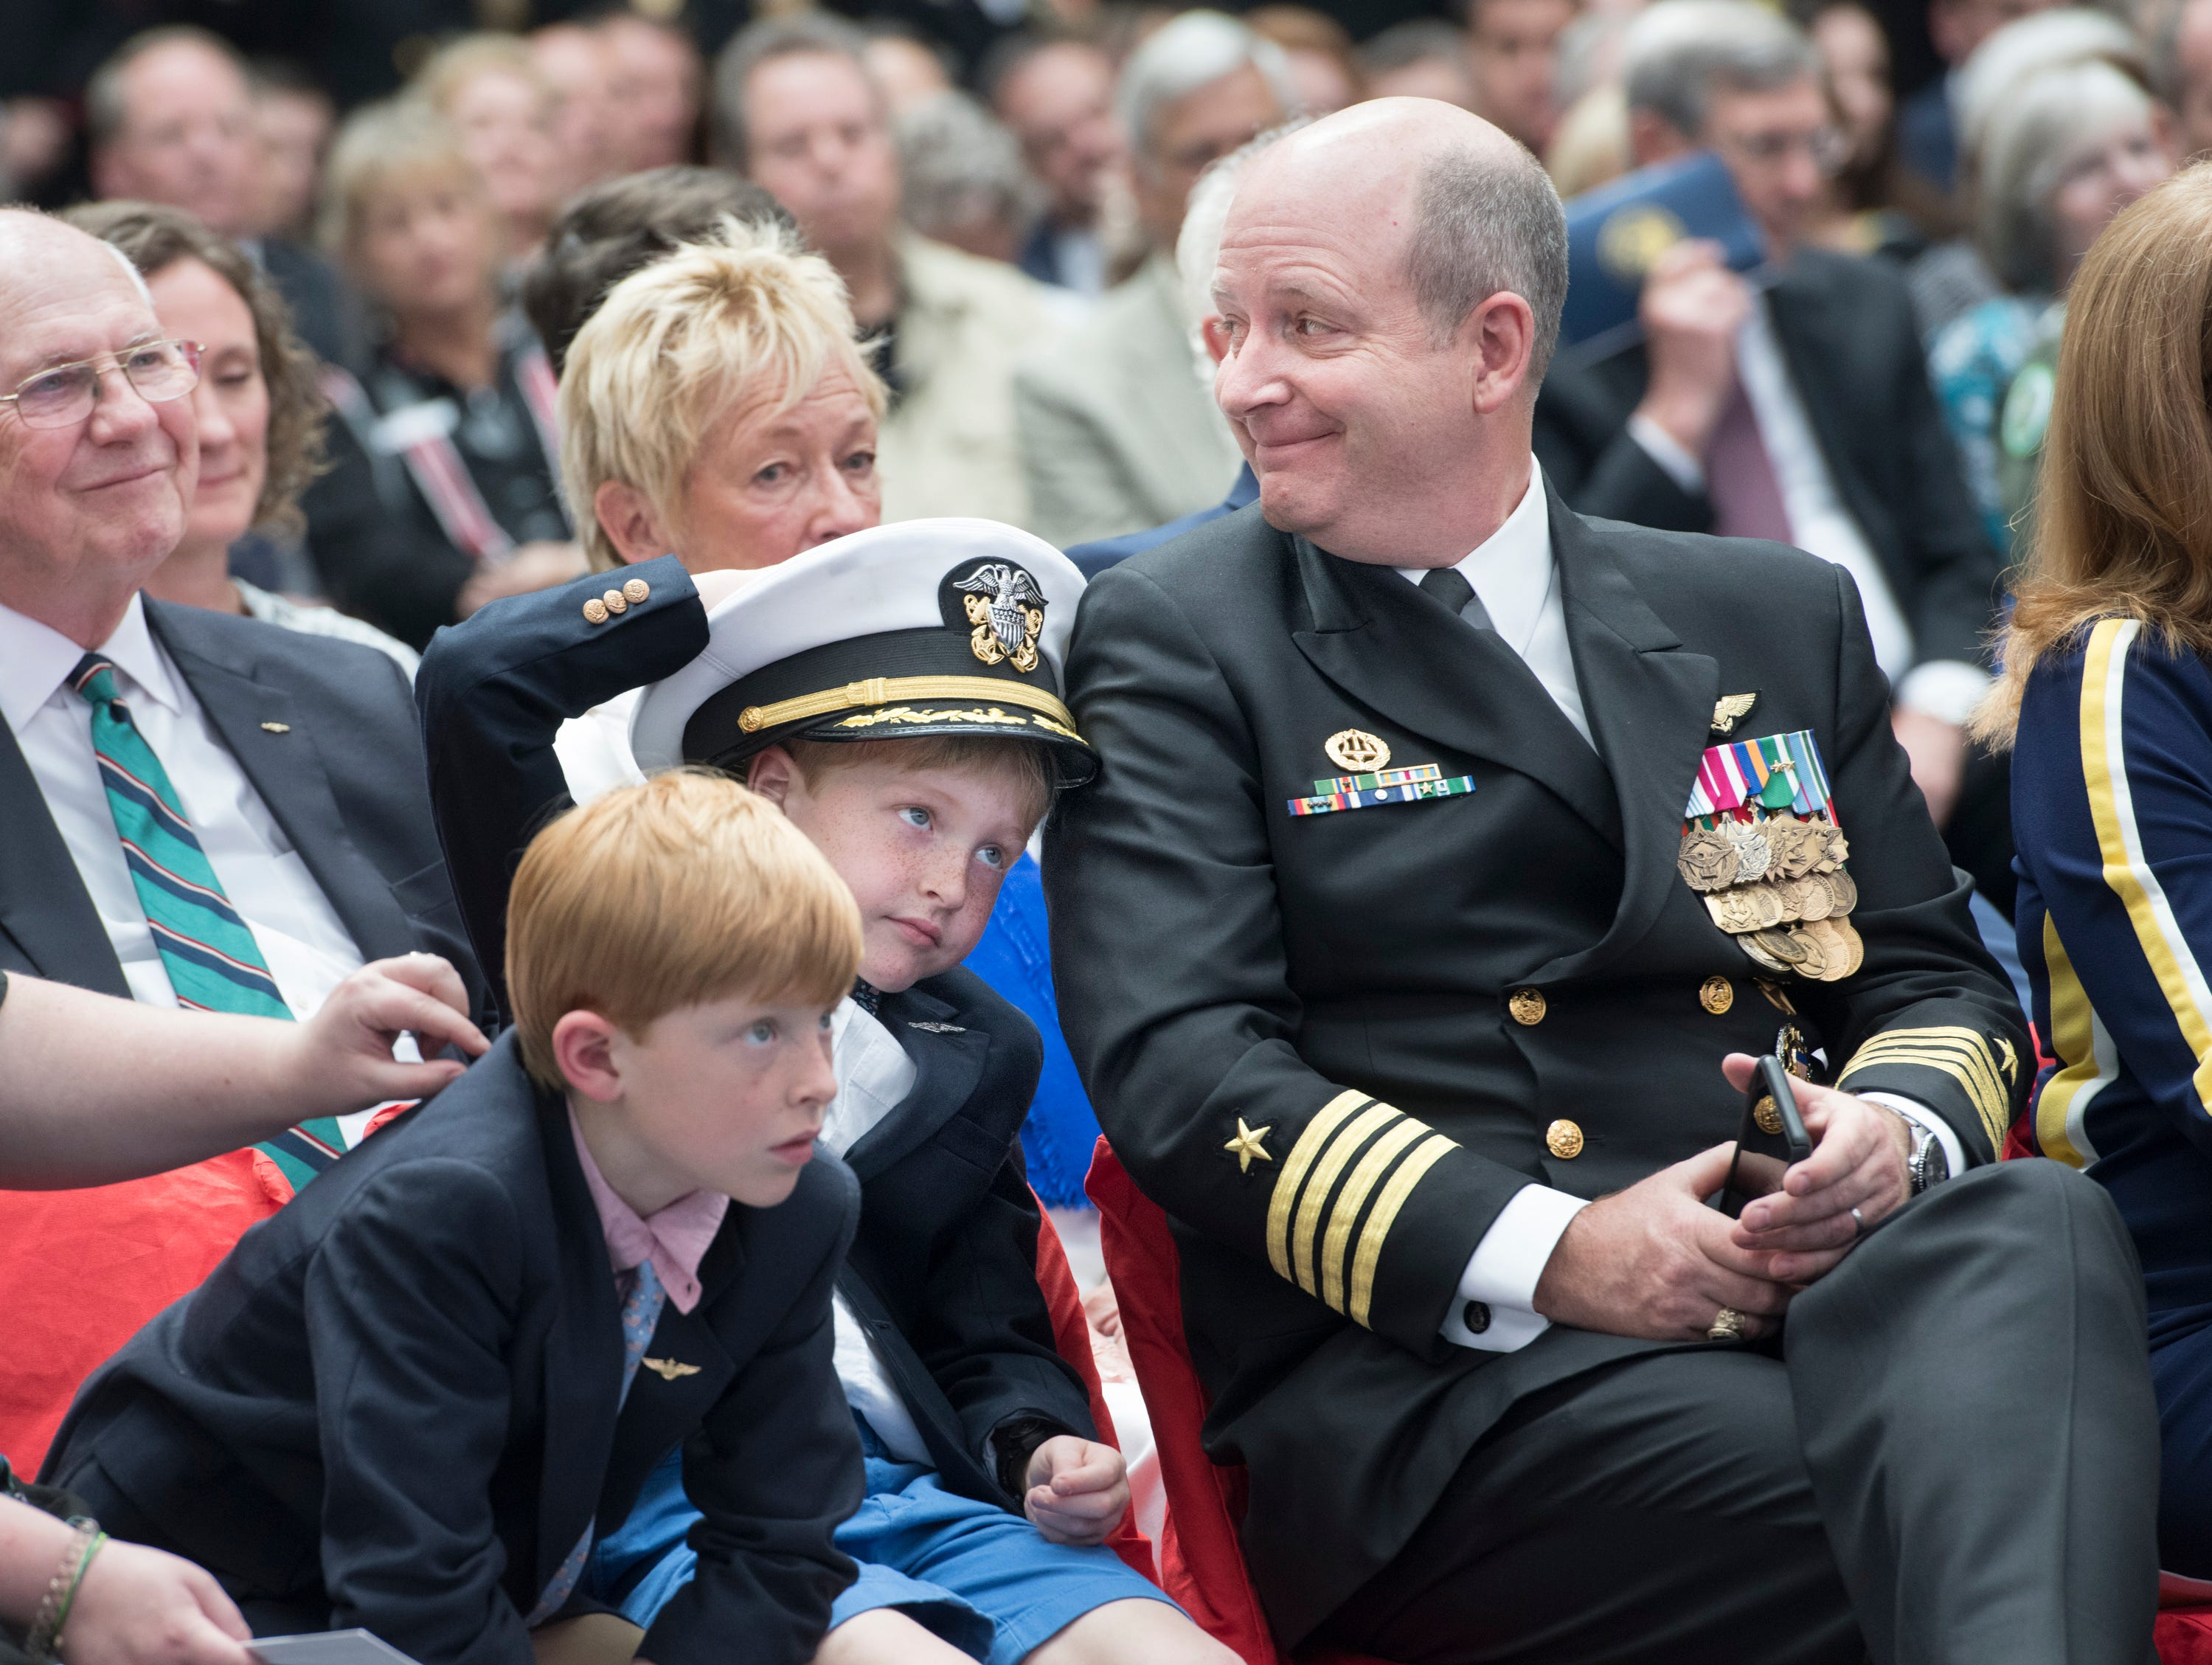 New base commander Capt. Timothy Kinsella, Jr. and family listen during the change of command ceremony at the National Naval Aviation Museum at Naval Air Station Pensacola on Thursday, March 14, 2019.